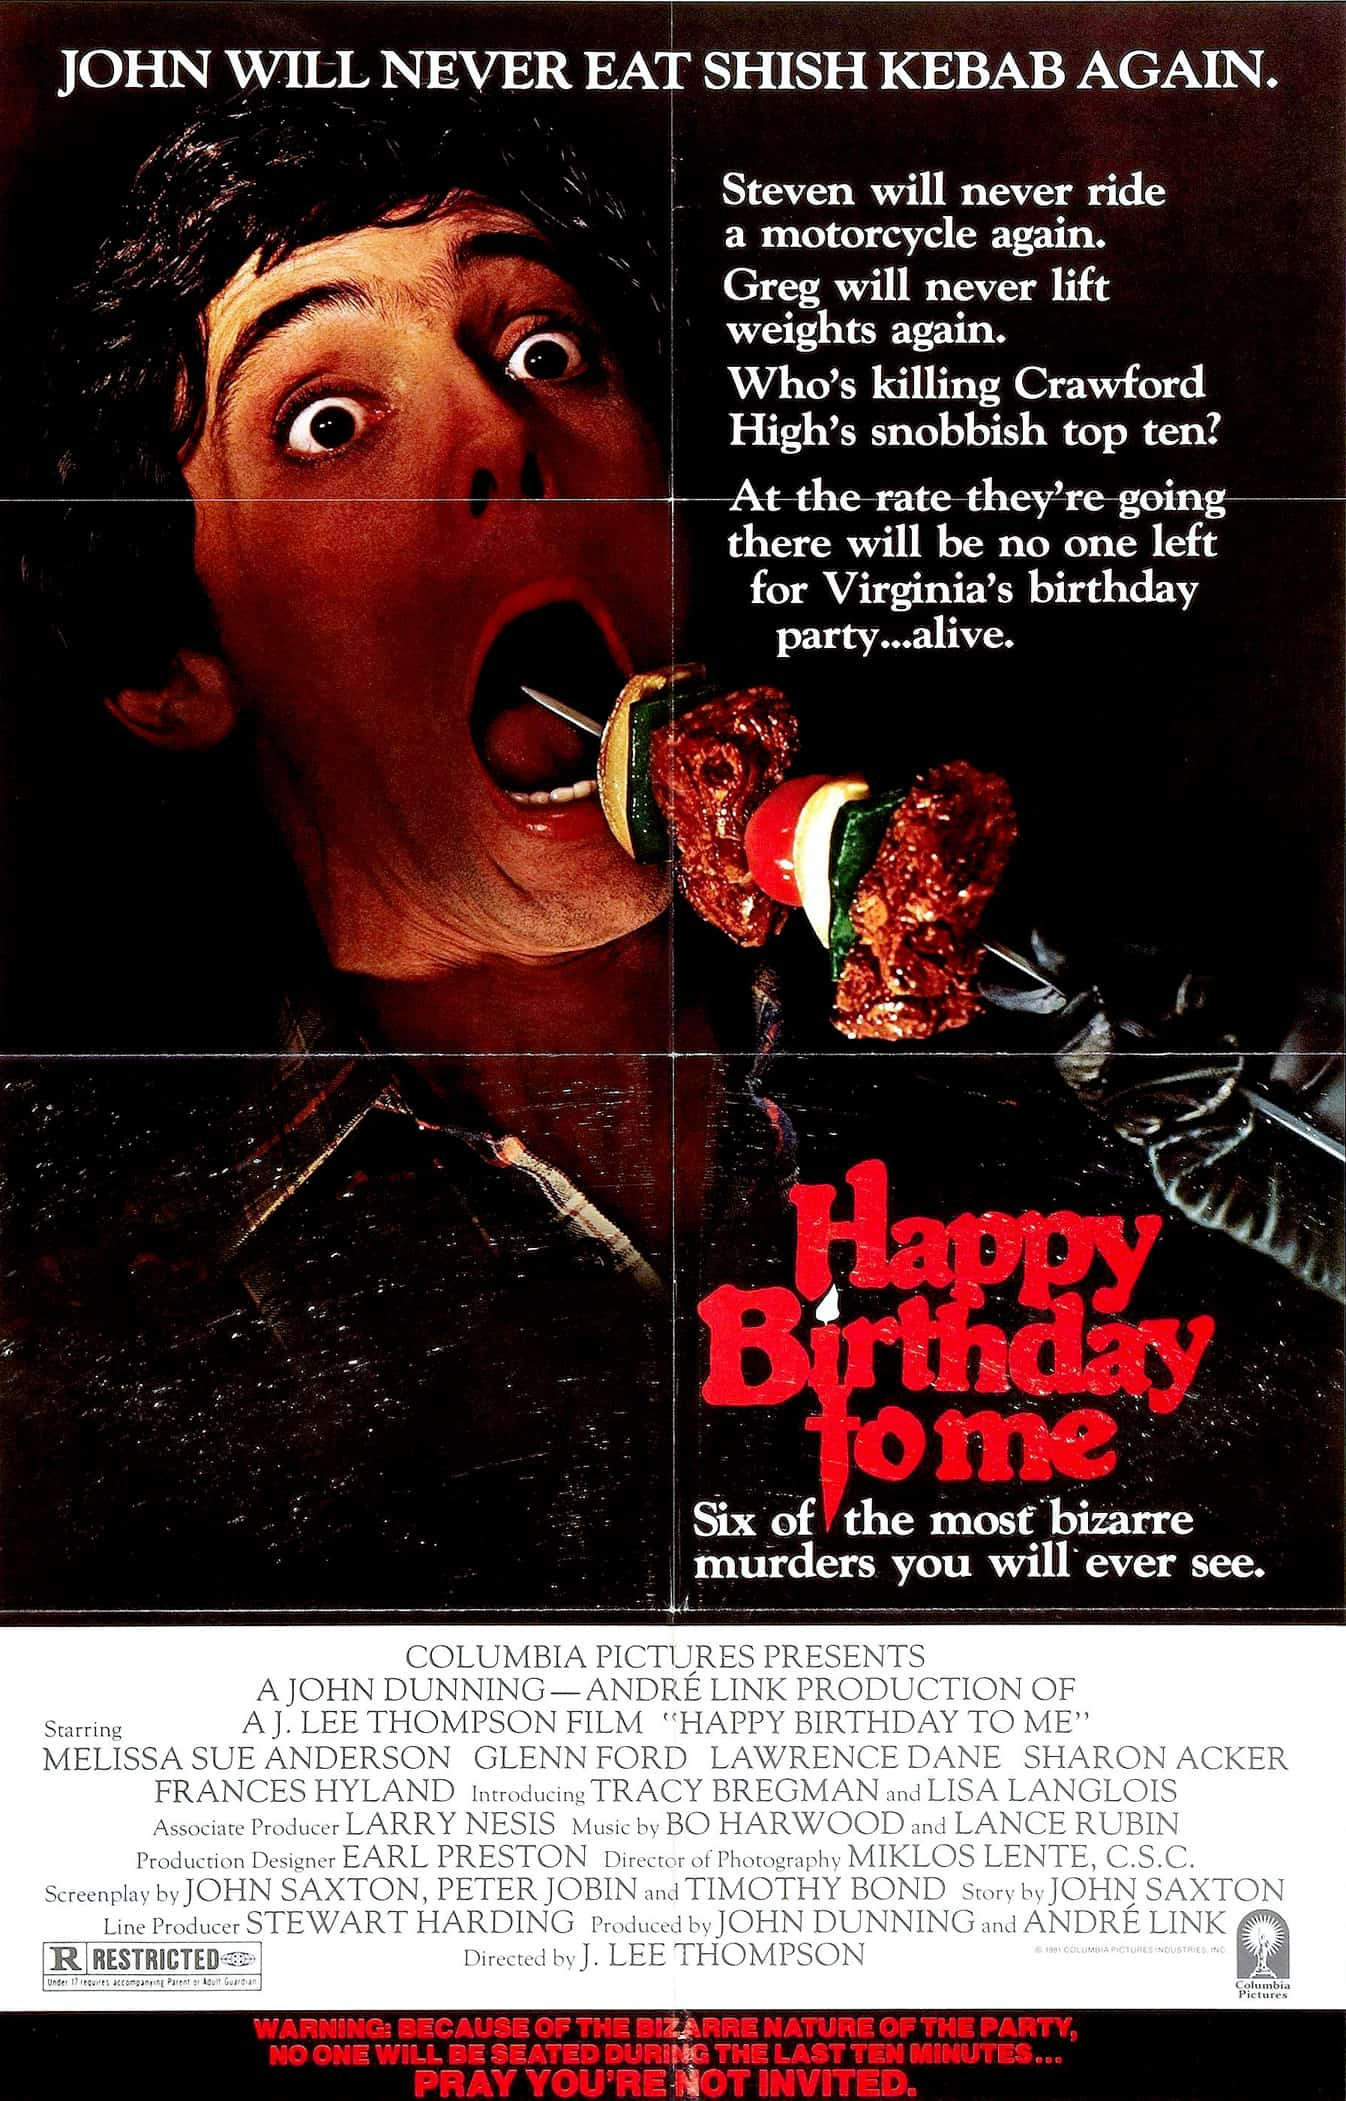 Movie Posters We Love: Happy Birthday to me (1981)